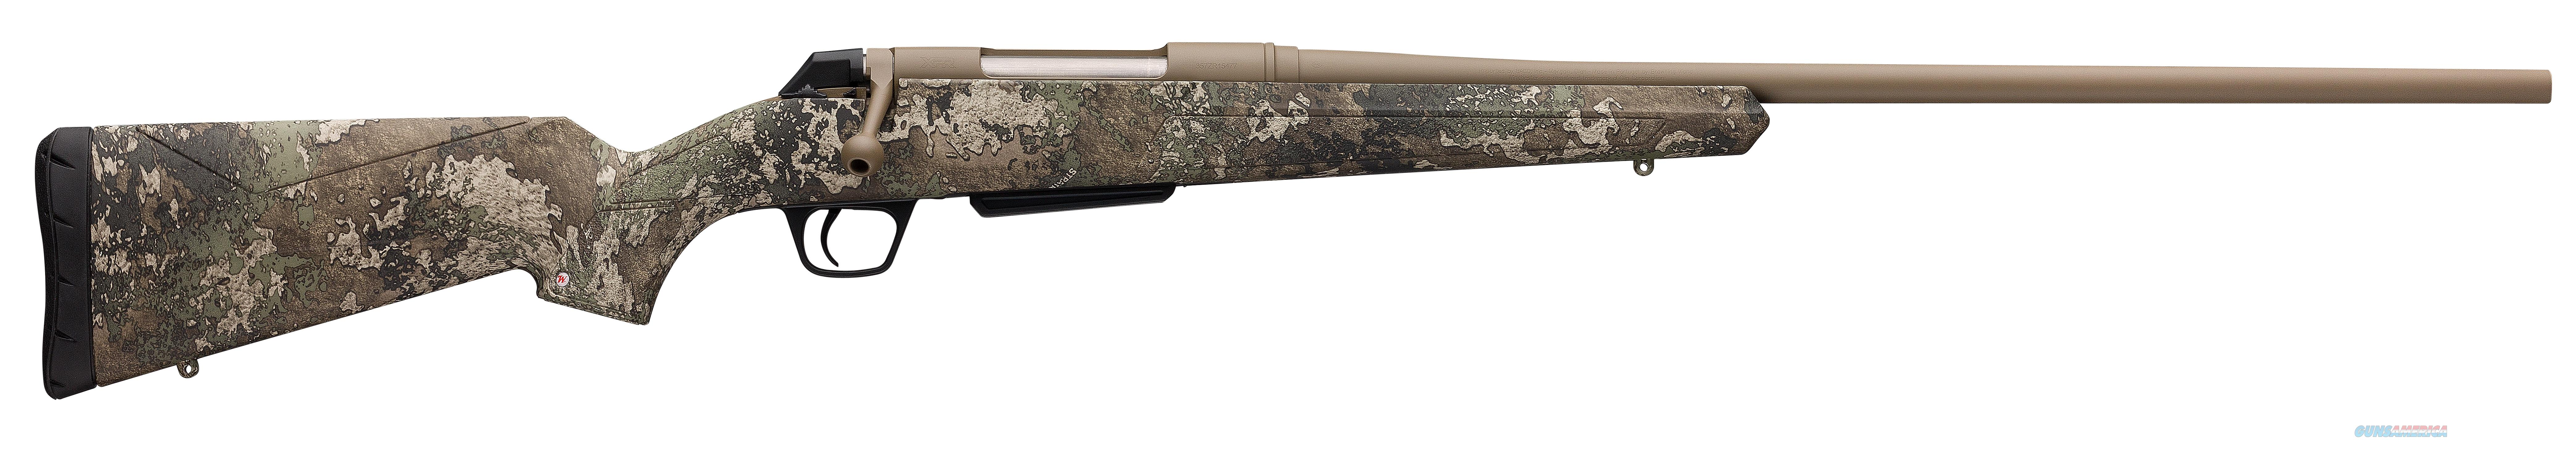 Winchester XPR Hunter True Timber Strata .300 WSM 535741255  Guns > Rifles > Winchester Rifles - Modern Bolt/Auto/Single > Other Bolt Action